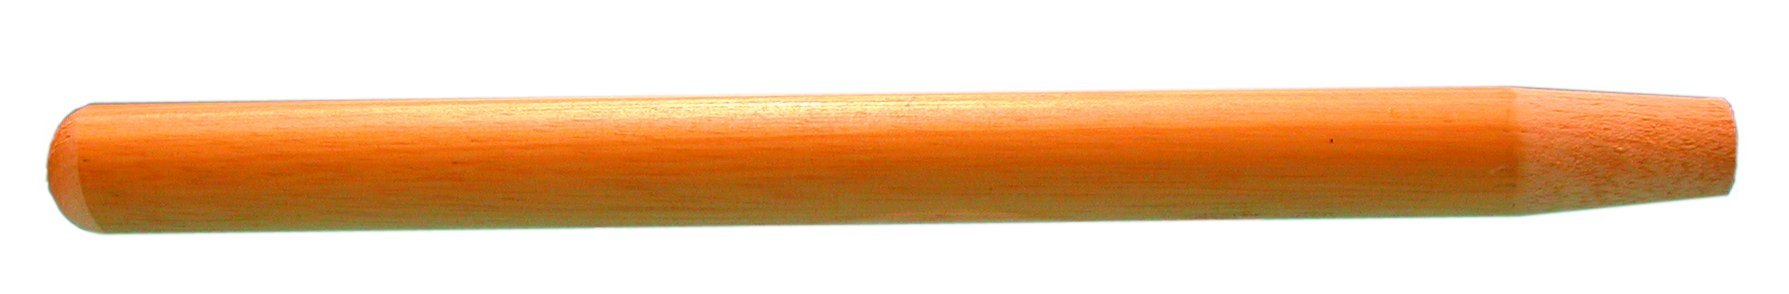 Magnolia Brush T-54 Hardwood Tapered Handle, 15/16 Diameter x 54'' Length (Case of 12)